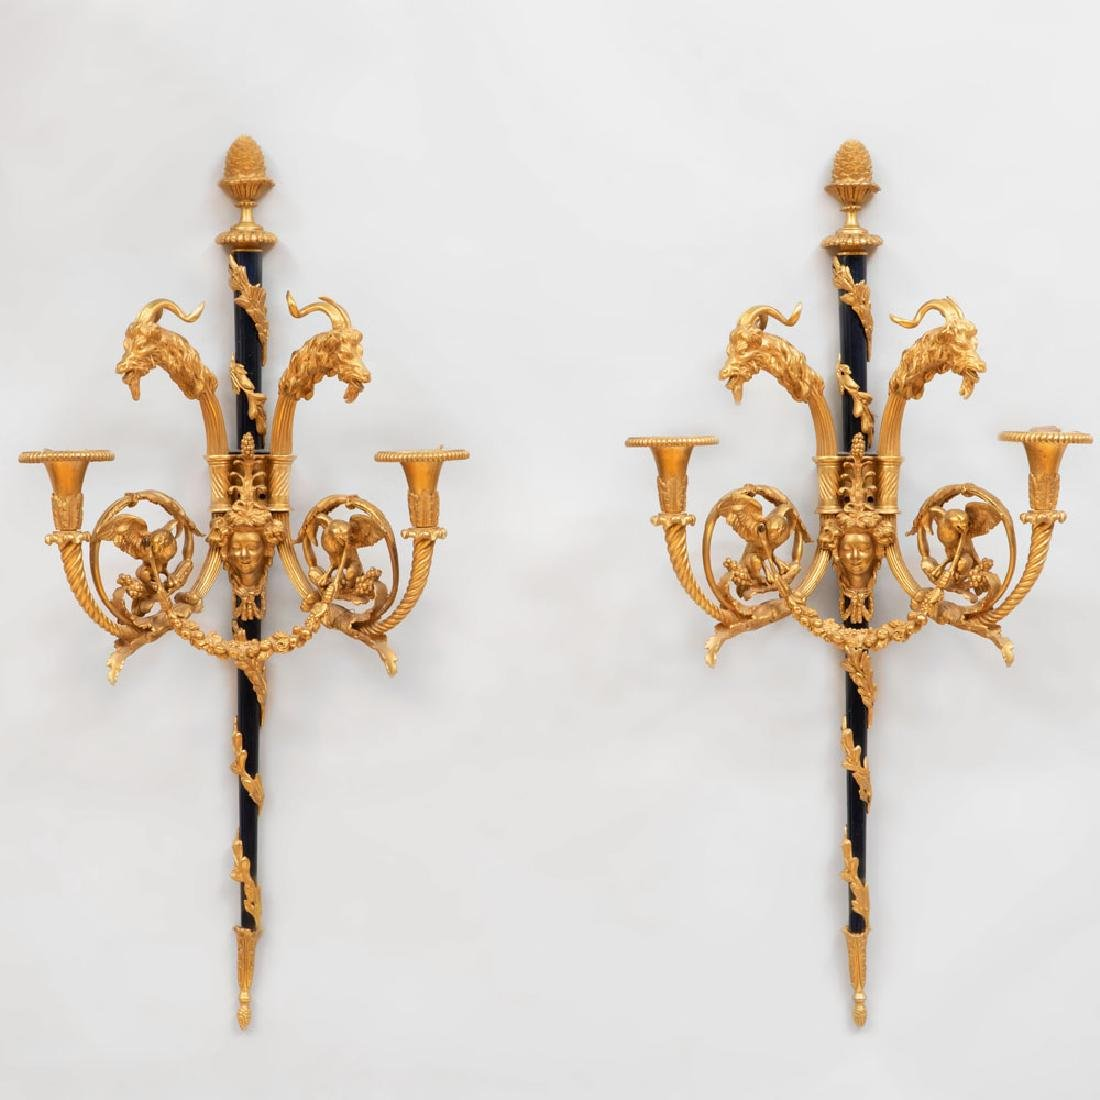 Pair of Louis XVI Style Gilt-and-Patinated Bronze